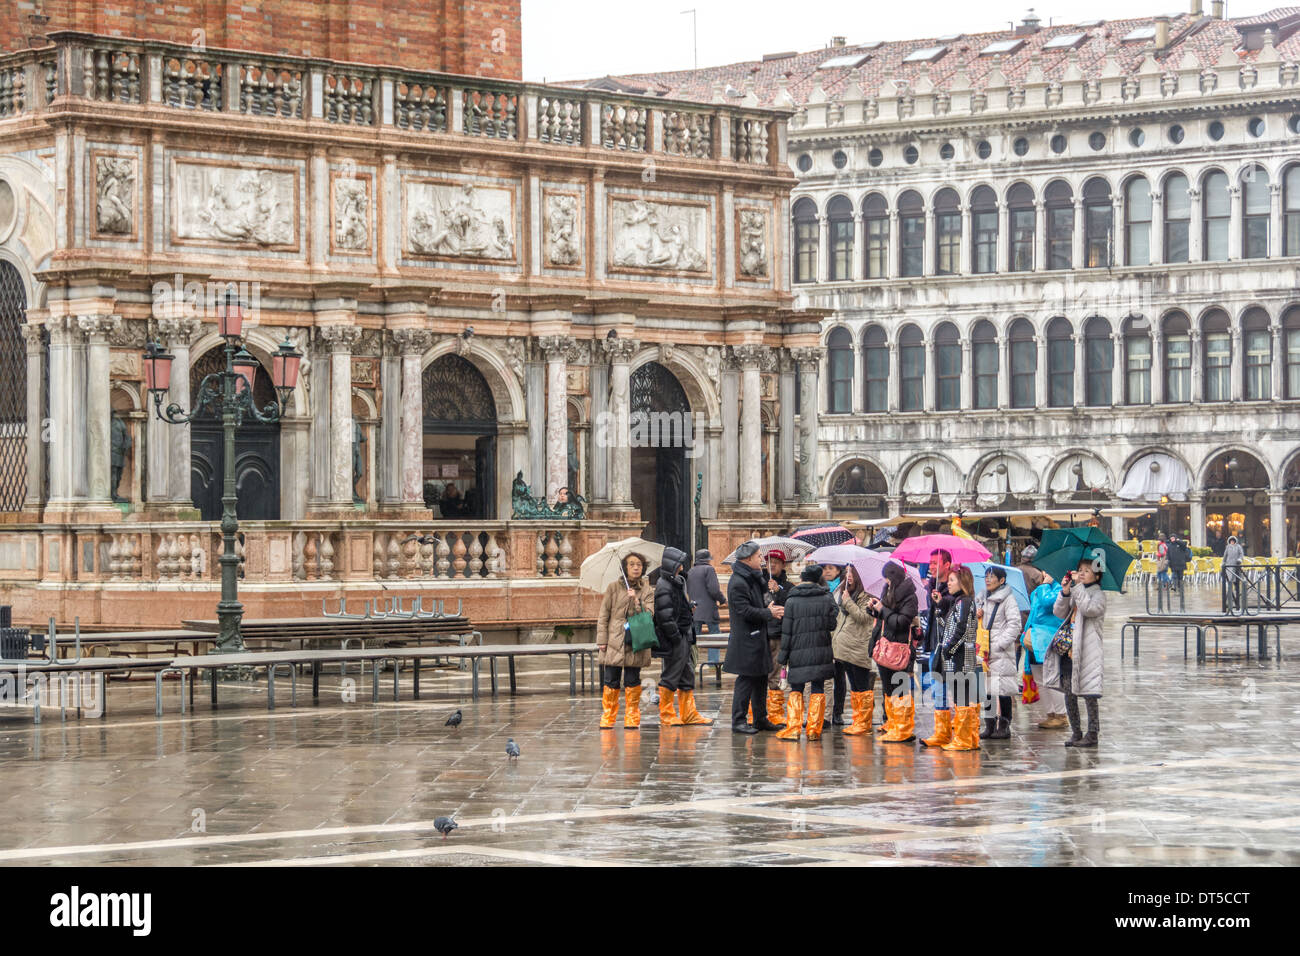 Venice, Italy. Asian tourists in wet weather clothing, umbrellas, and orange rain boots on St Mark´s Square, Campanile Stock Photo